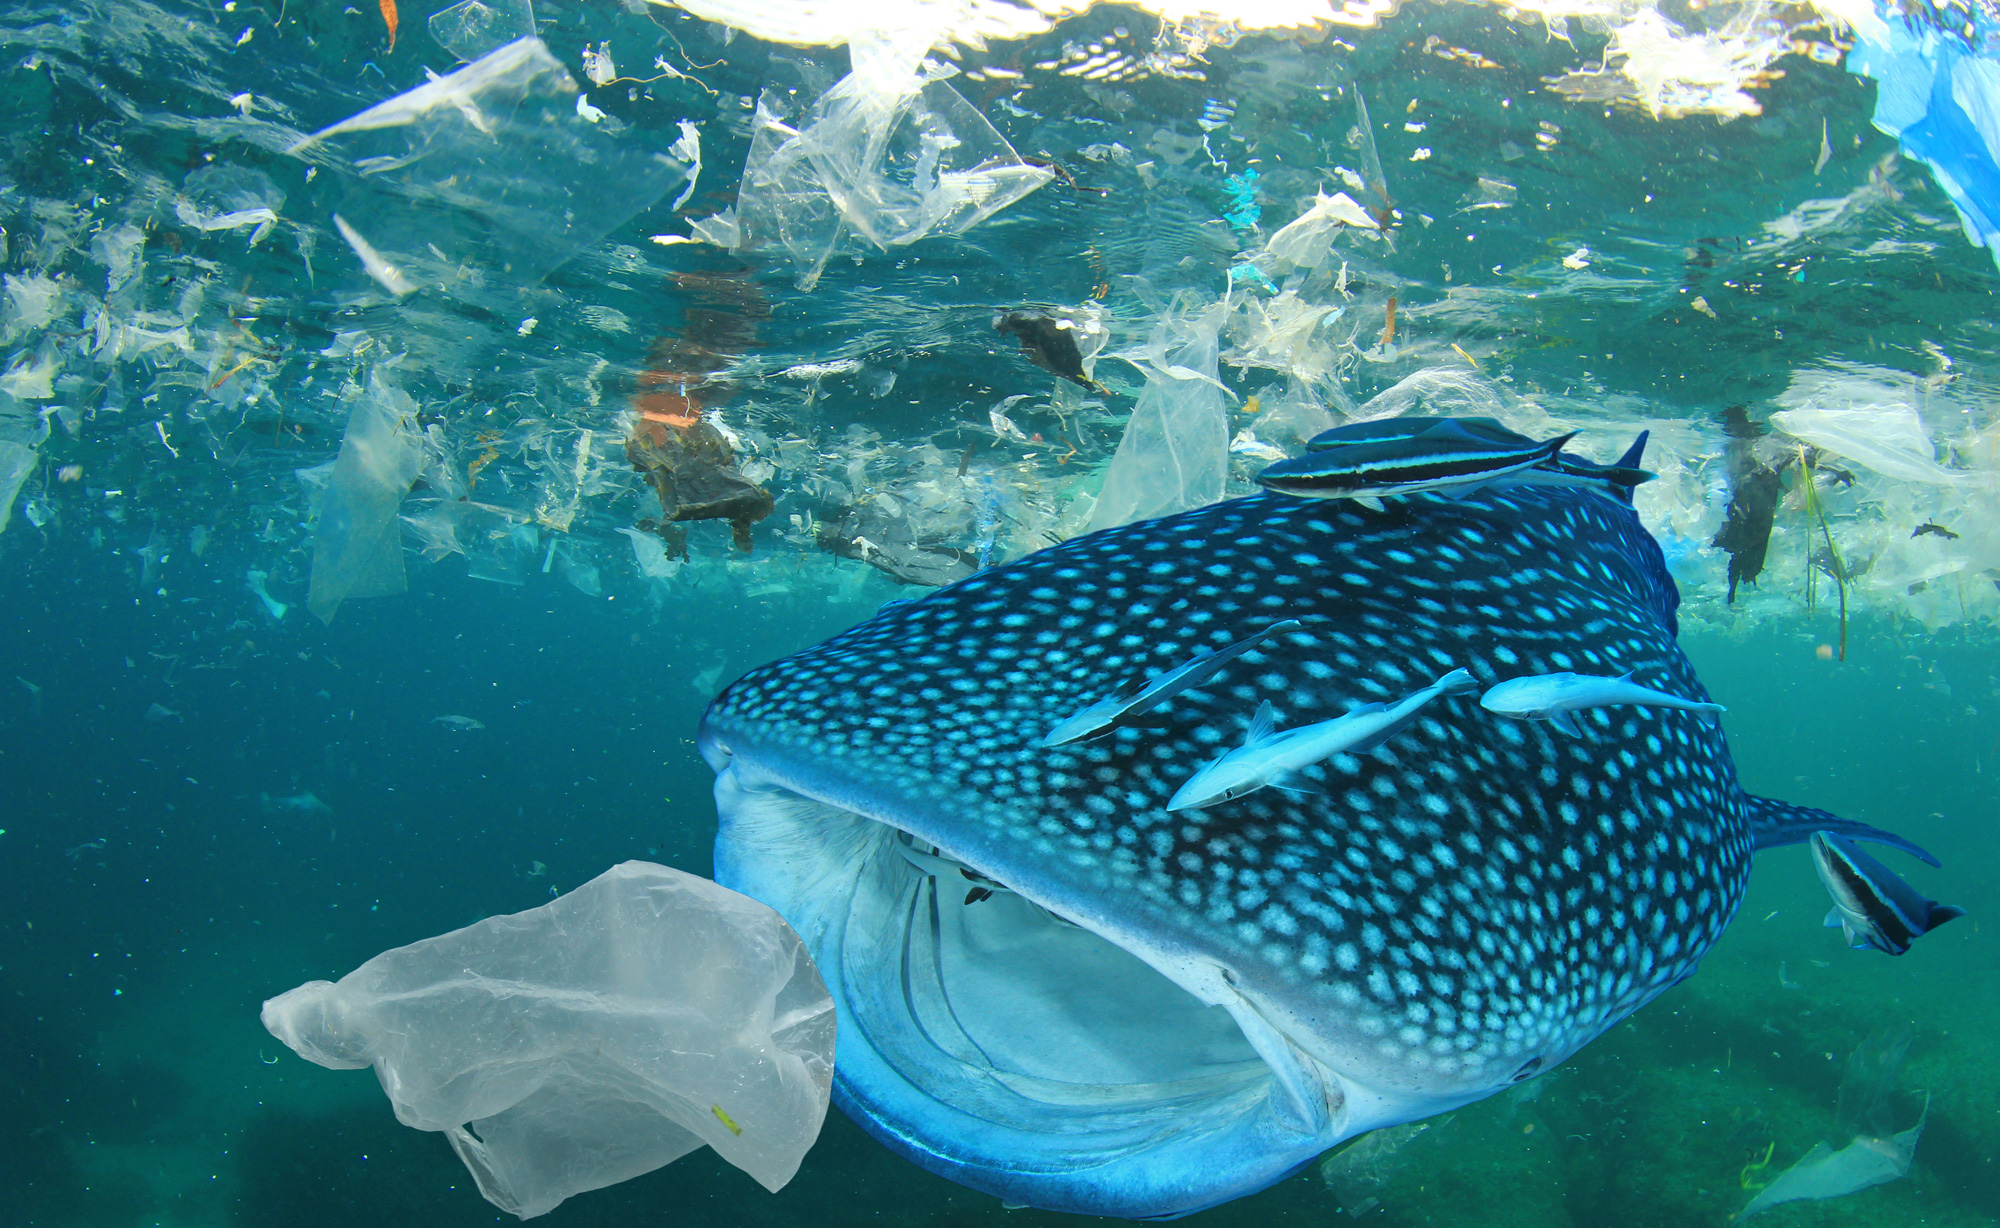 A whale shark about to swallow a piece of plastic. Scientific disposal of waste can help avoid deadly mishaps